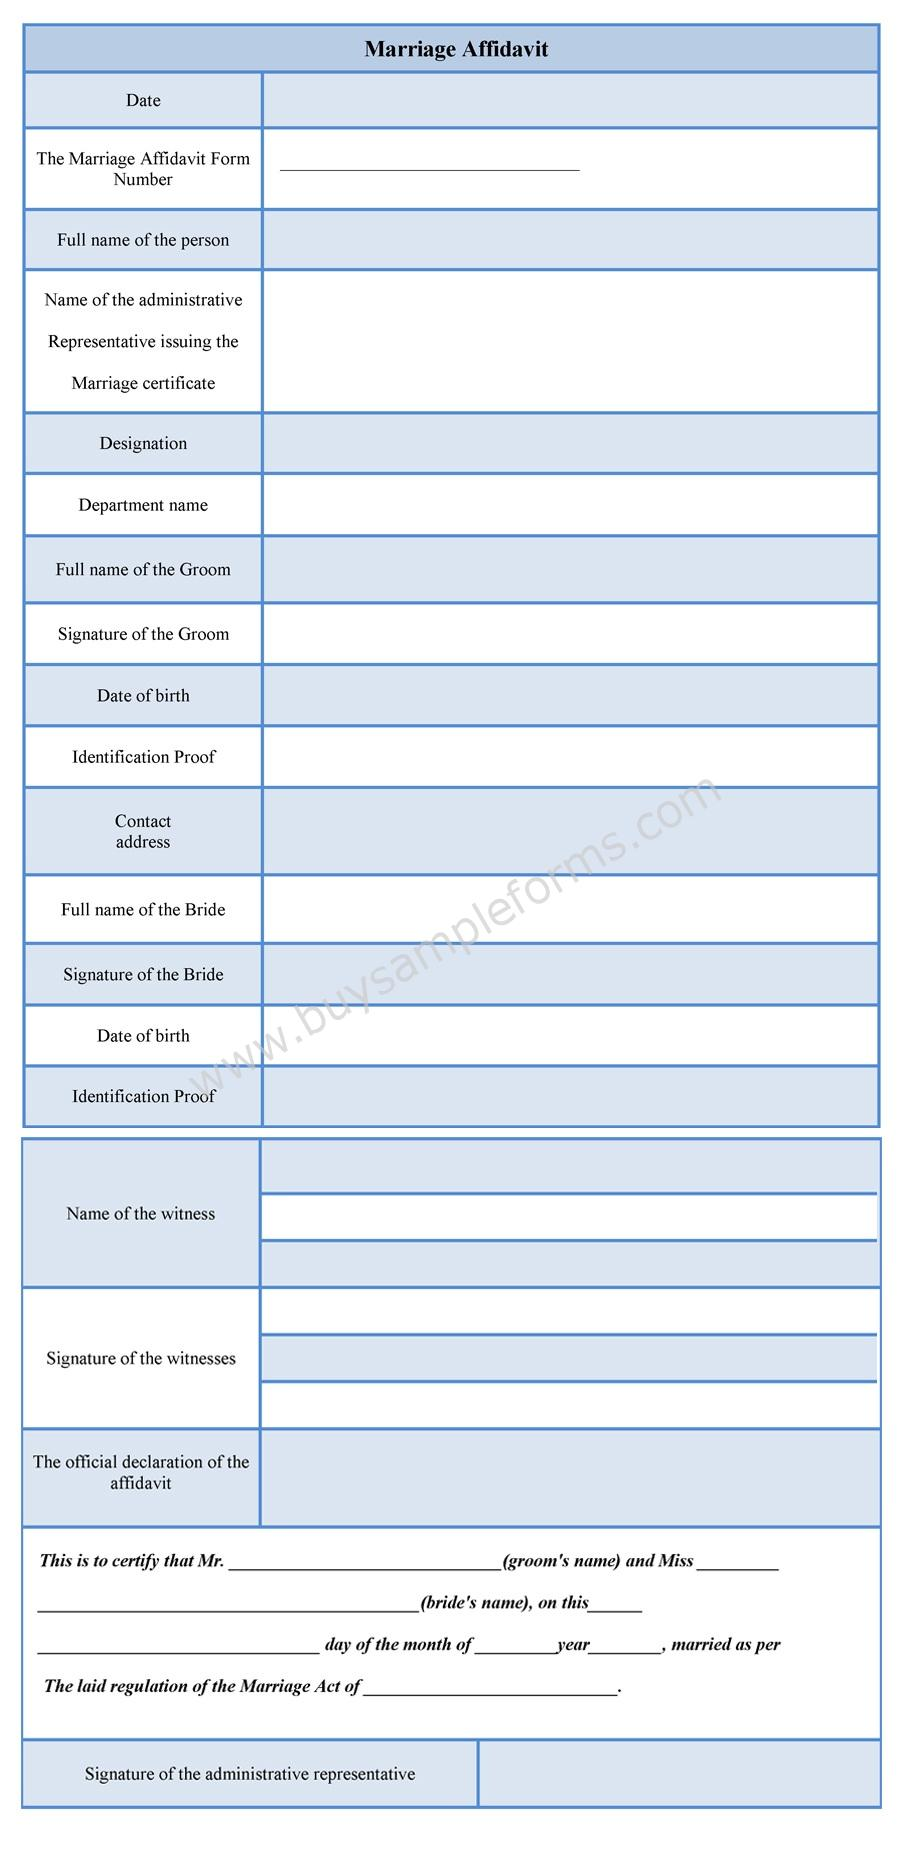 Marriage Affidavit Form - Sample Forms